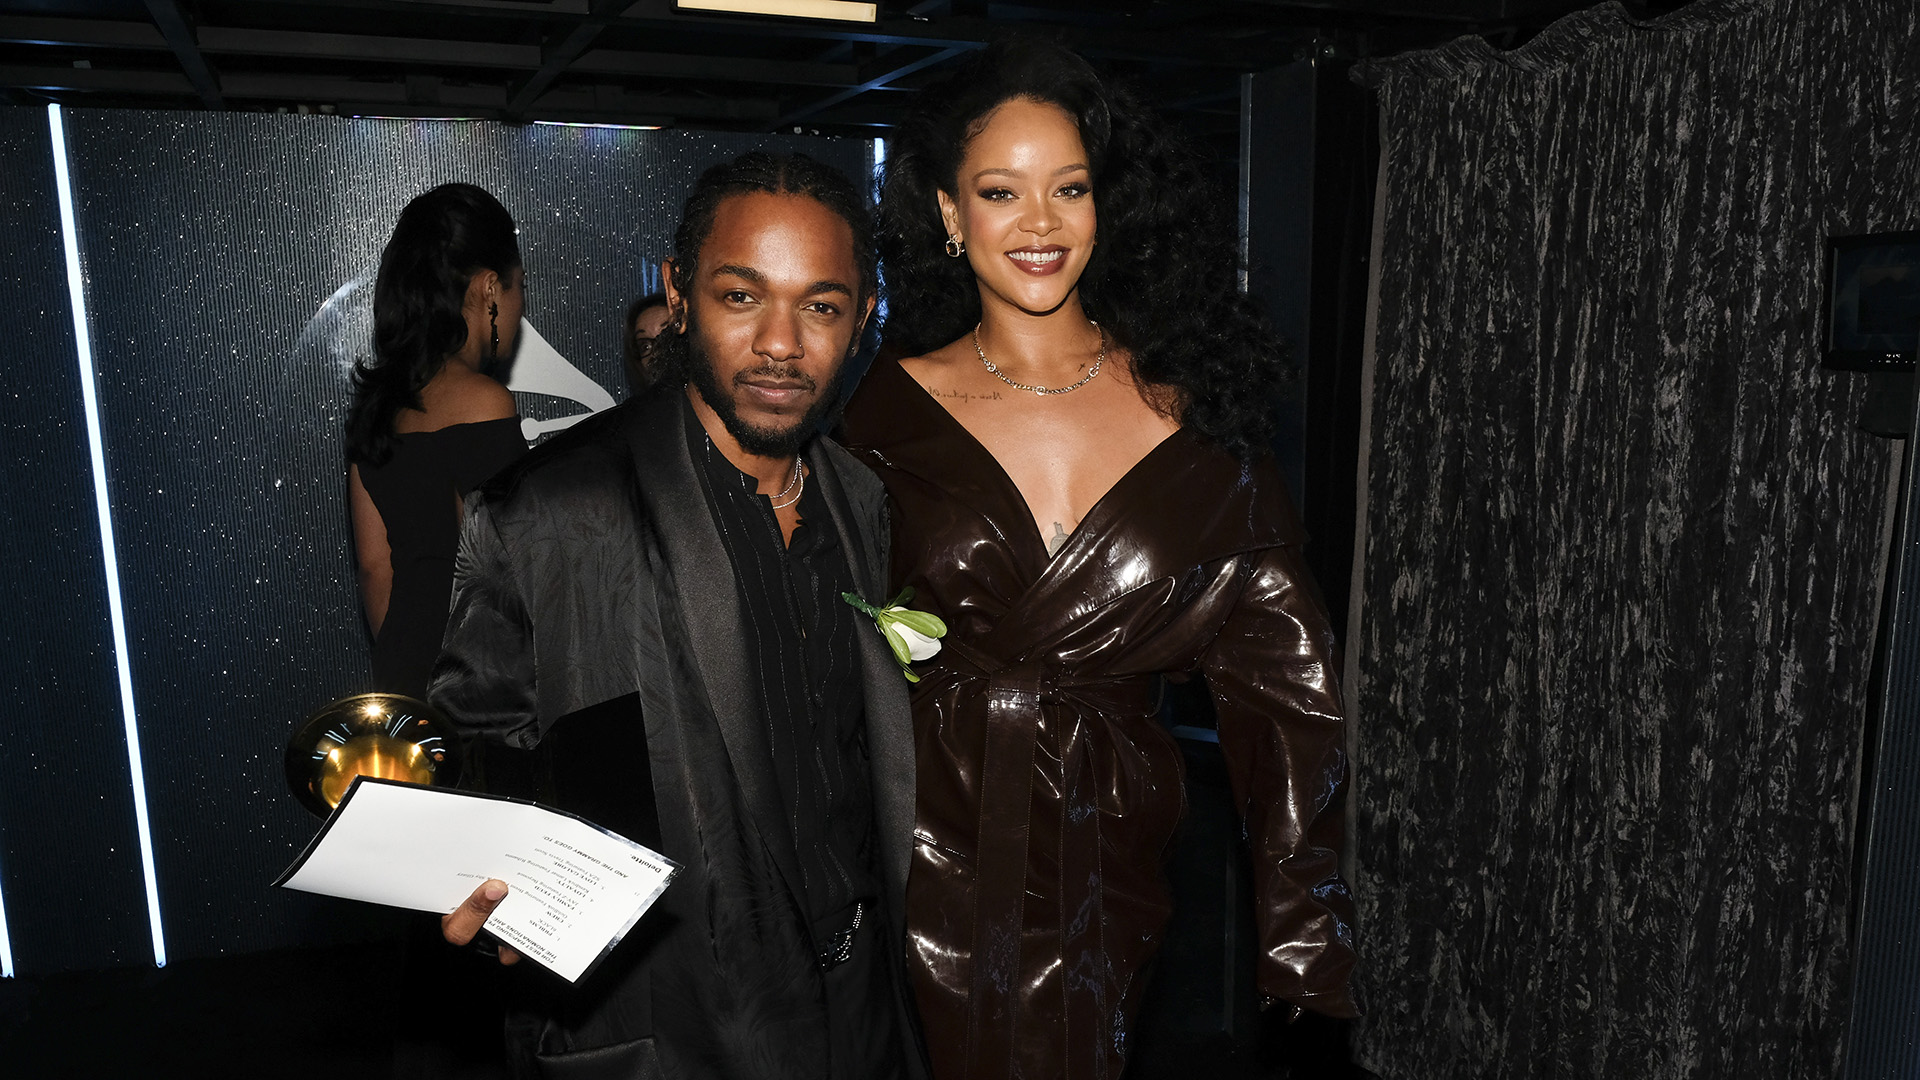 Hip-hop figurehead Kendrick Lamar walks backstage with R&B/pop superstar Rihanna after accepting a trophy for Best Rap/Sung Collaboration.